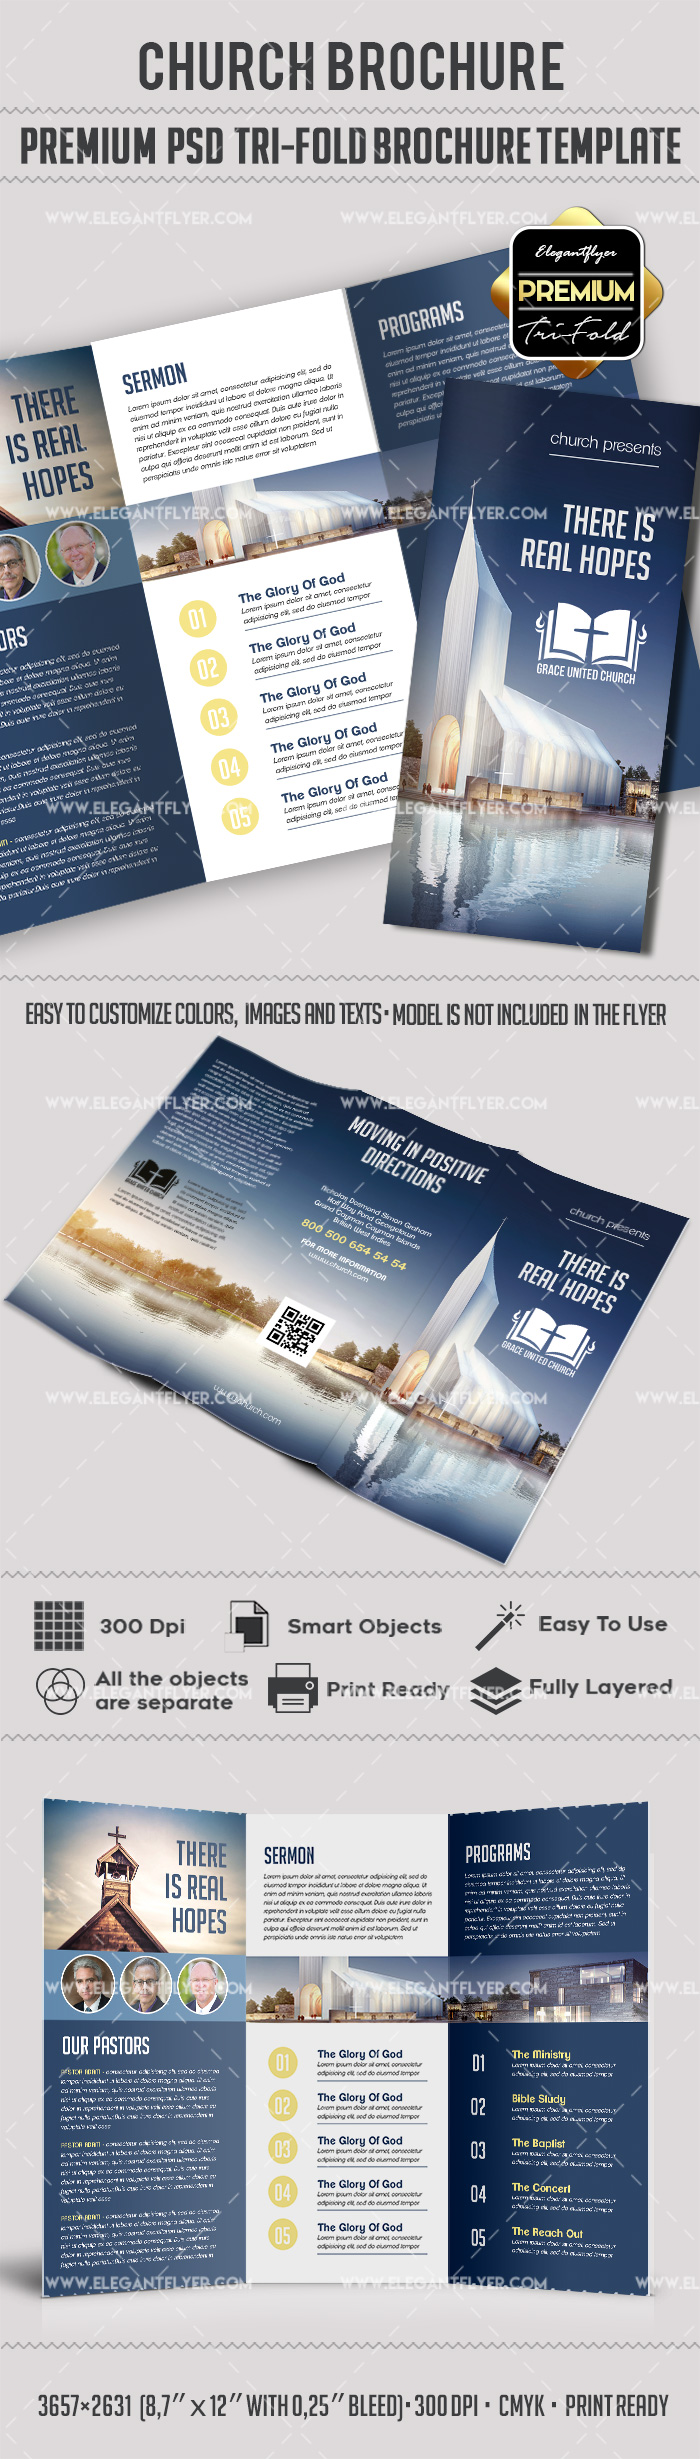 Church premium tri fold psd brochure template by for Tri fold brochure psd template